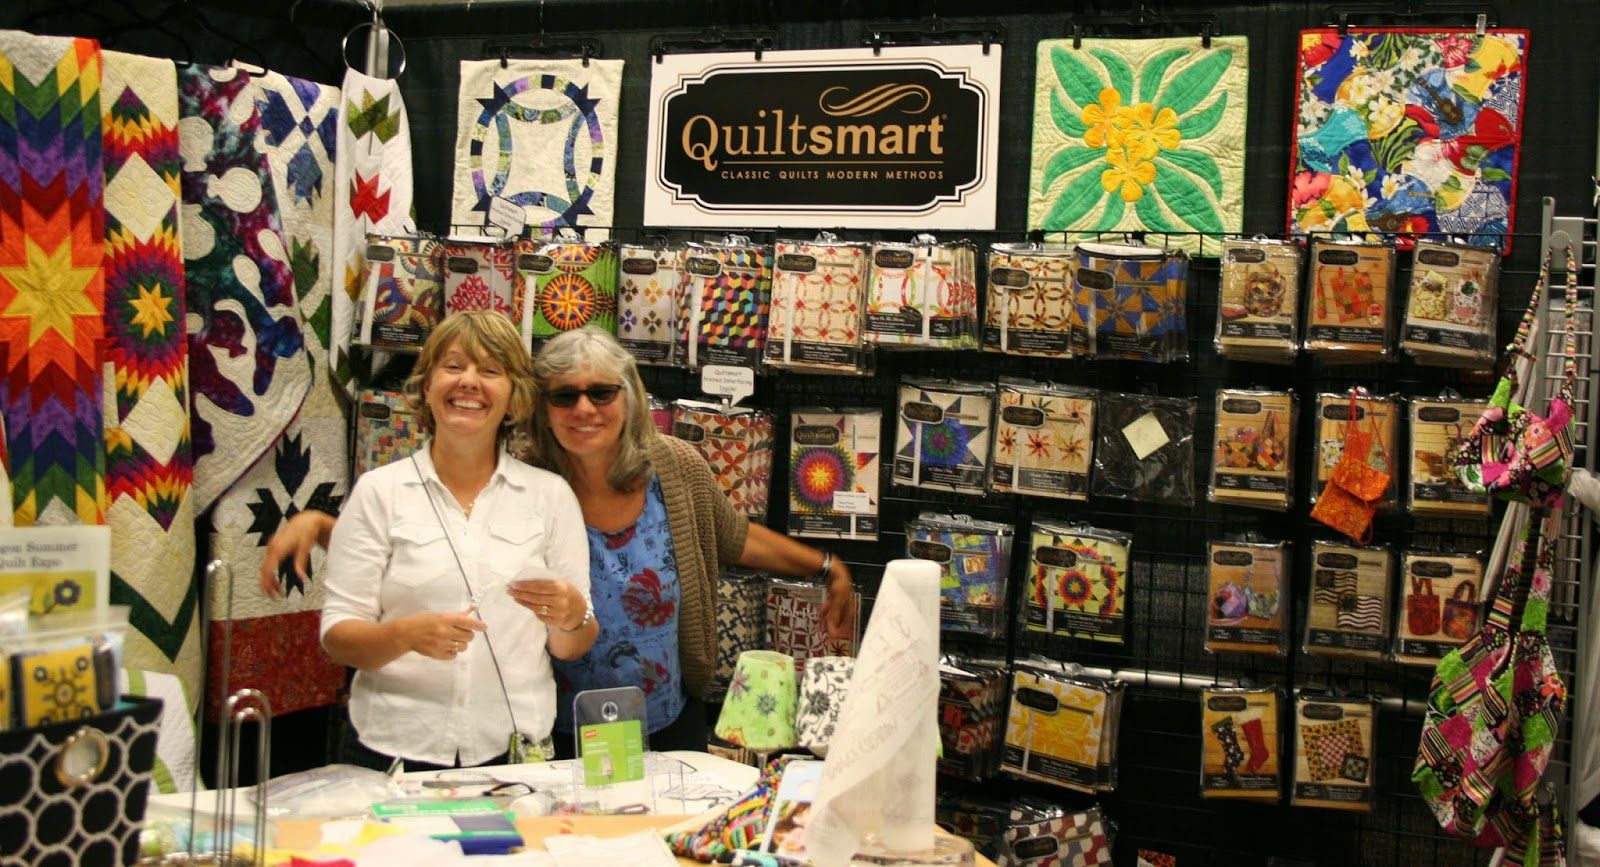 Quiltsmart Maple Leaf and Quiltsmart Bear Claw Patterns